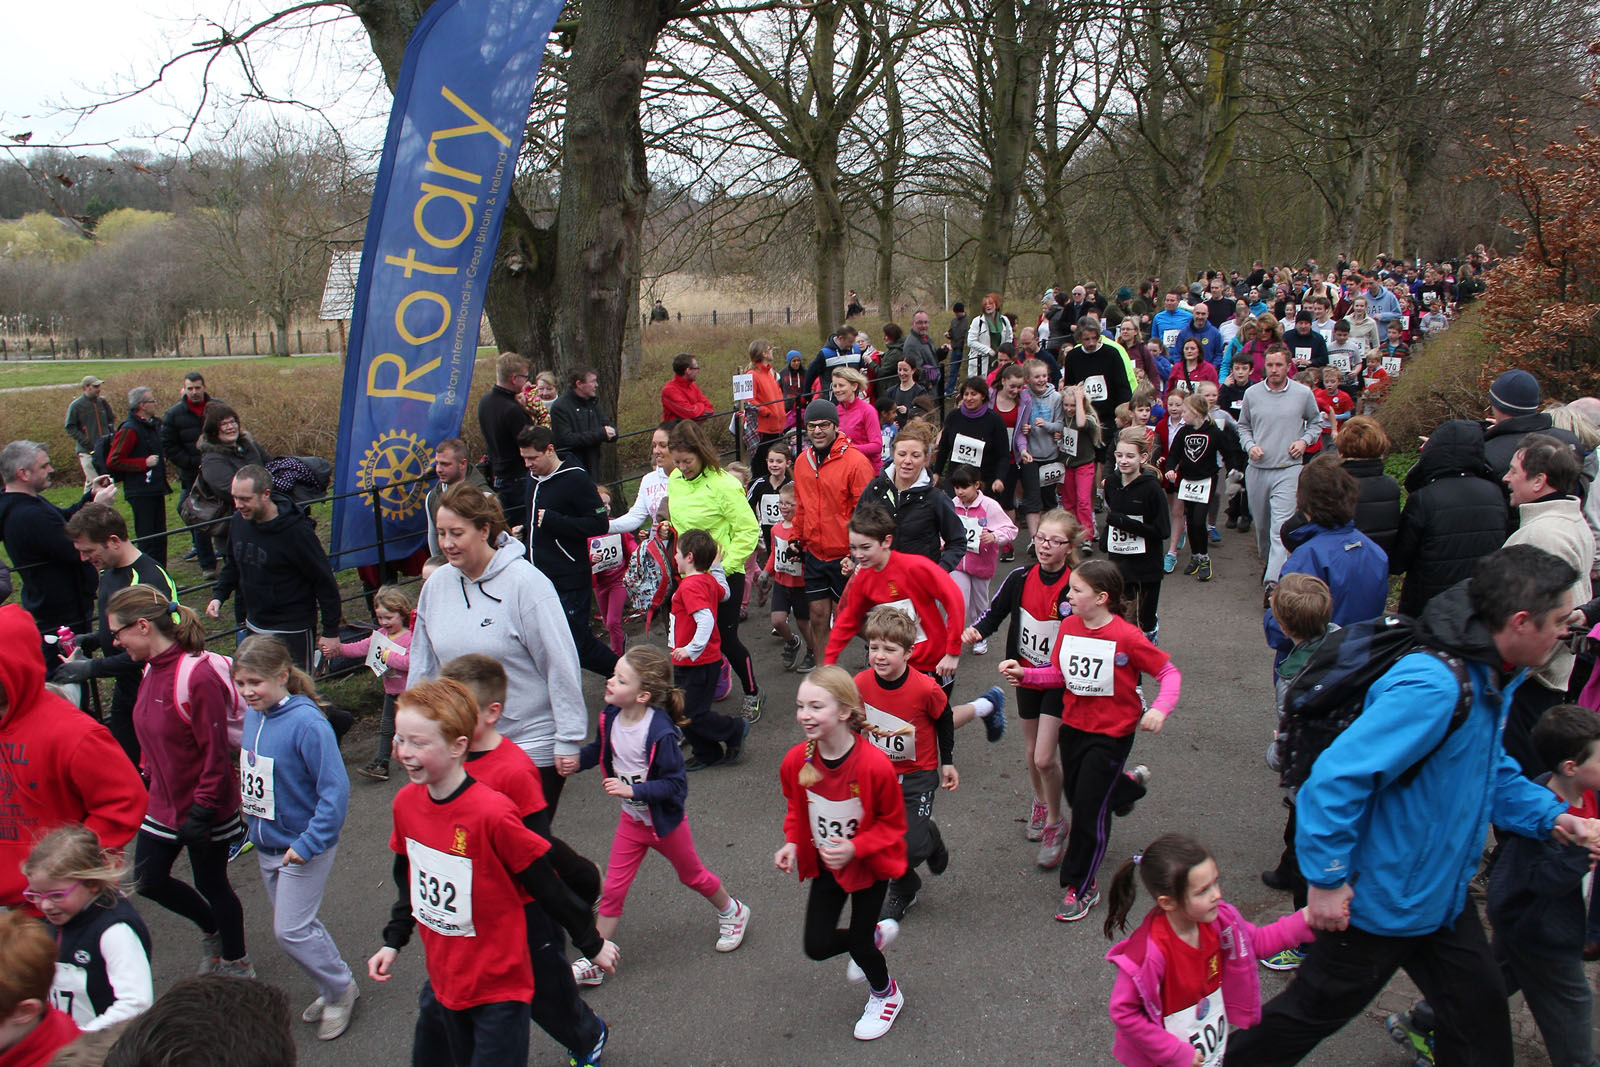 Record numbers take part in 15th annual Knutsford Jog